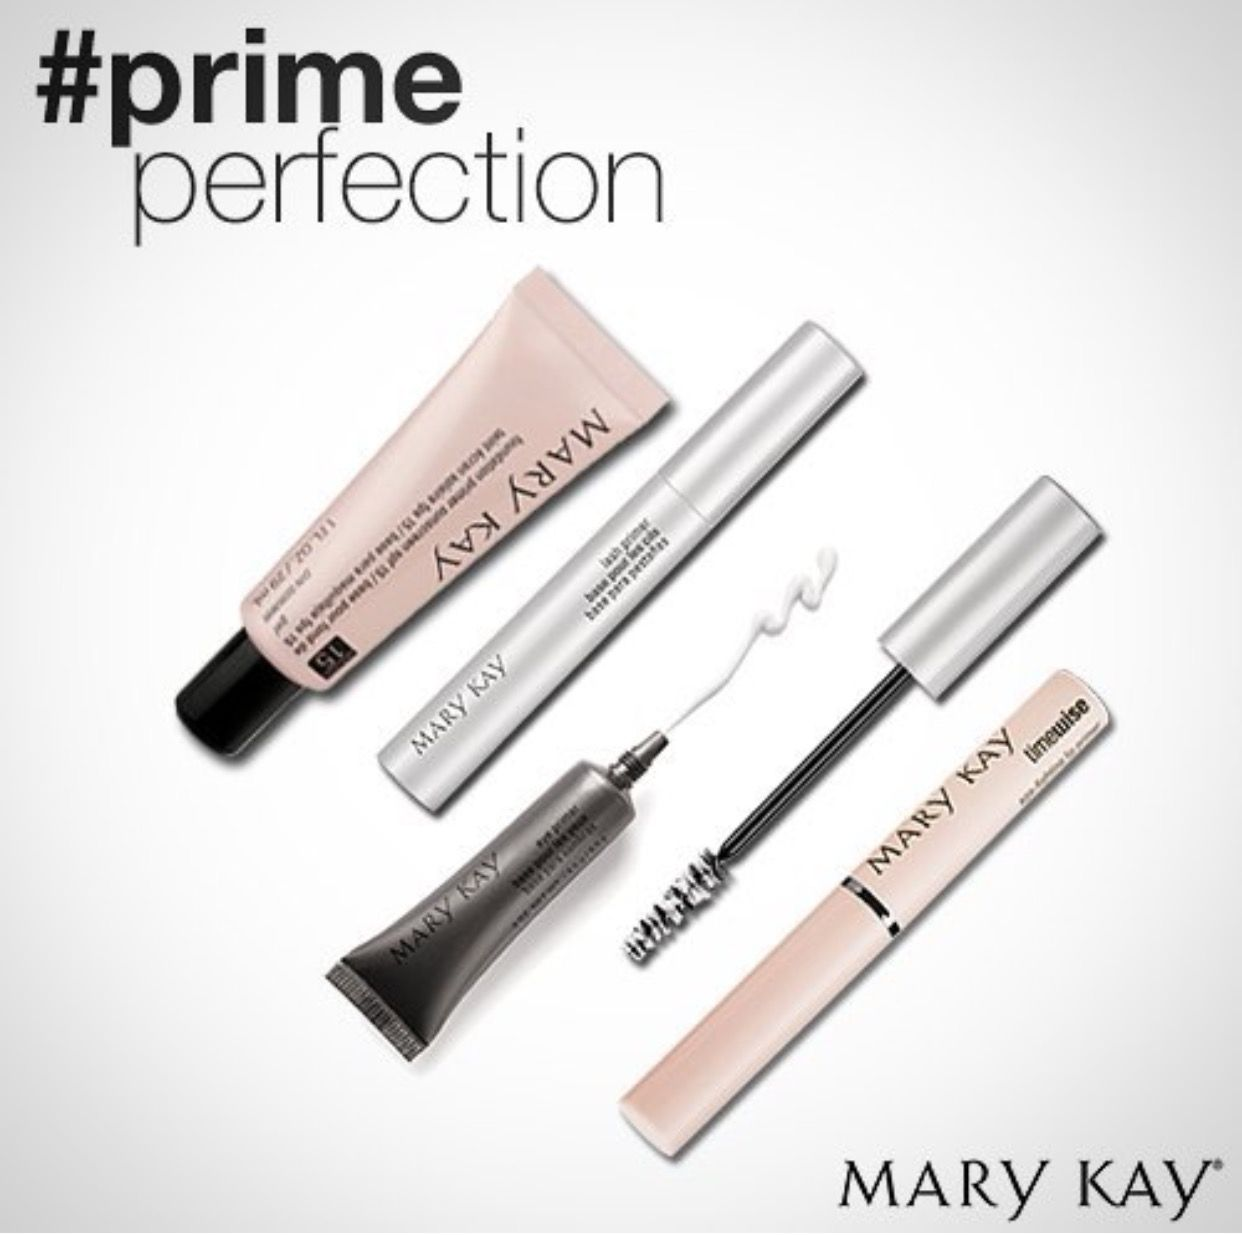 Mary kay mascara image by A Udie on Mary Kay Graphics